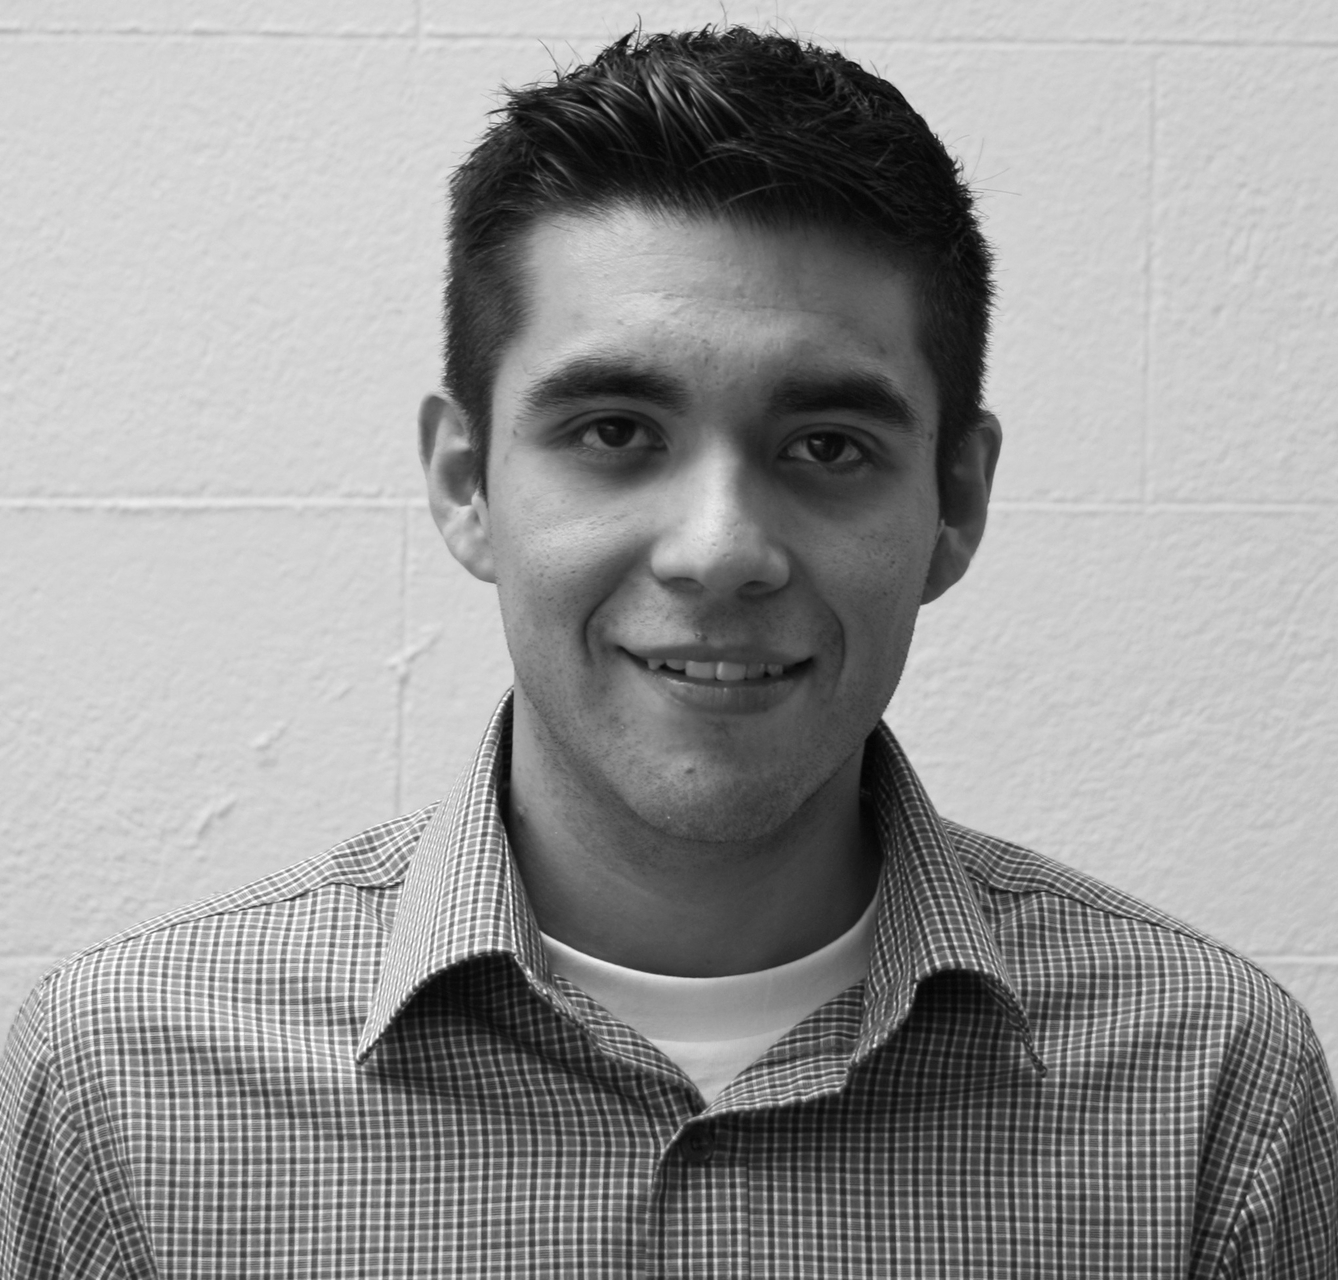 Jorge Robles - Mix Technician, Engineering   After graduating with a diploma in Sound Engineering in 2013 Jorge became the newest member of the engineering team. He is based at Ardmore Sound.